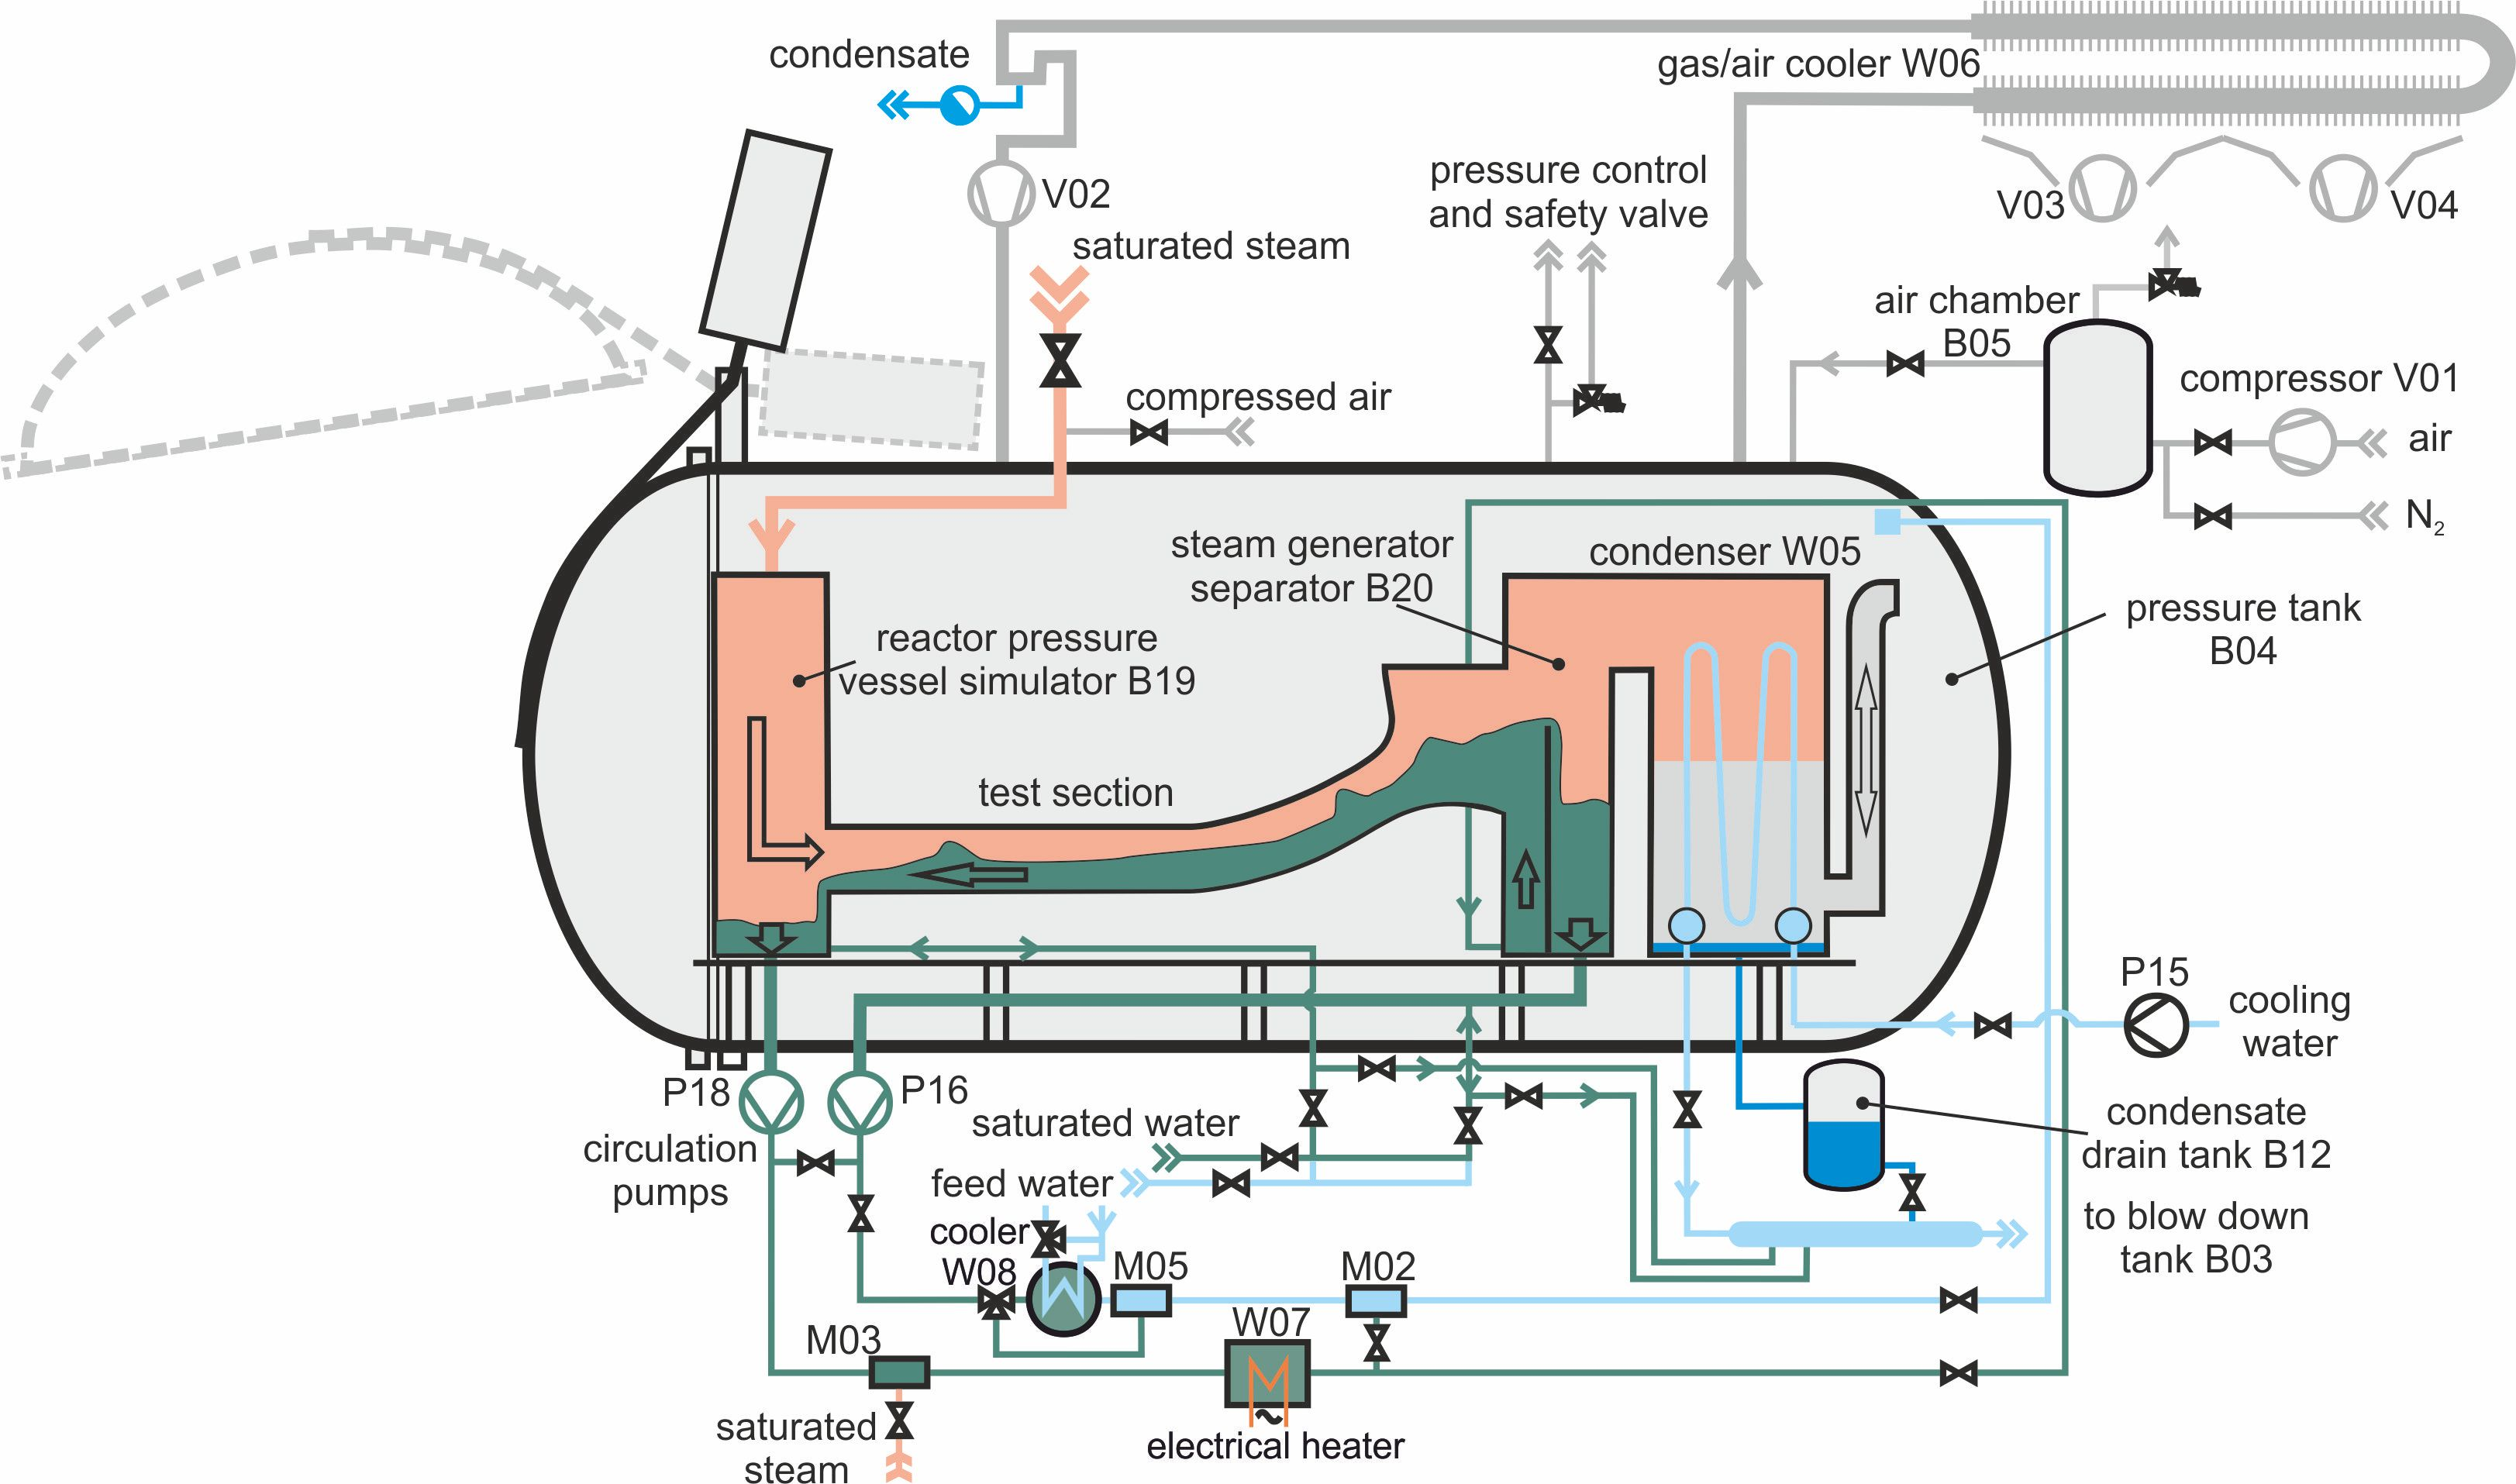 Counter Current Flow Limitation In The Hot Leg Of A Pwr Nuclear Fac Compressor Wiring Diagram 150 Test Rig Installed Topflow Pressure Tank